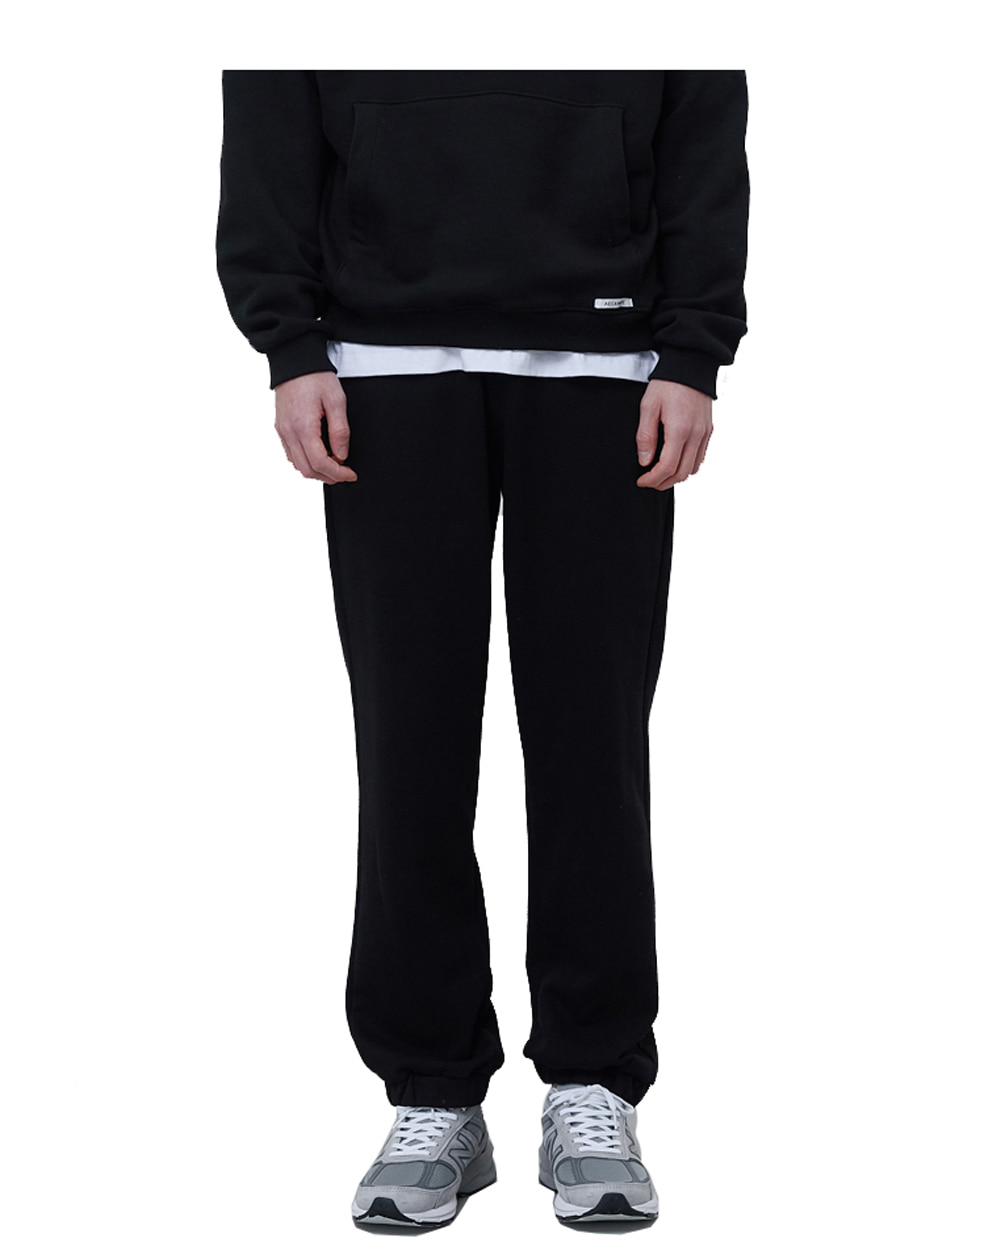 에이카화이트 FINEST COTTON SWEATPANTS (Black)